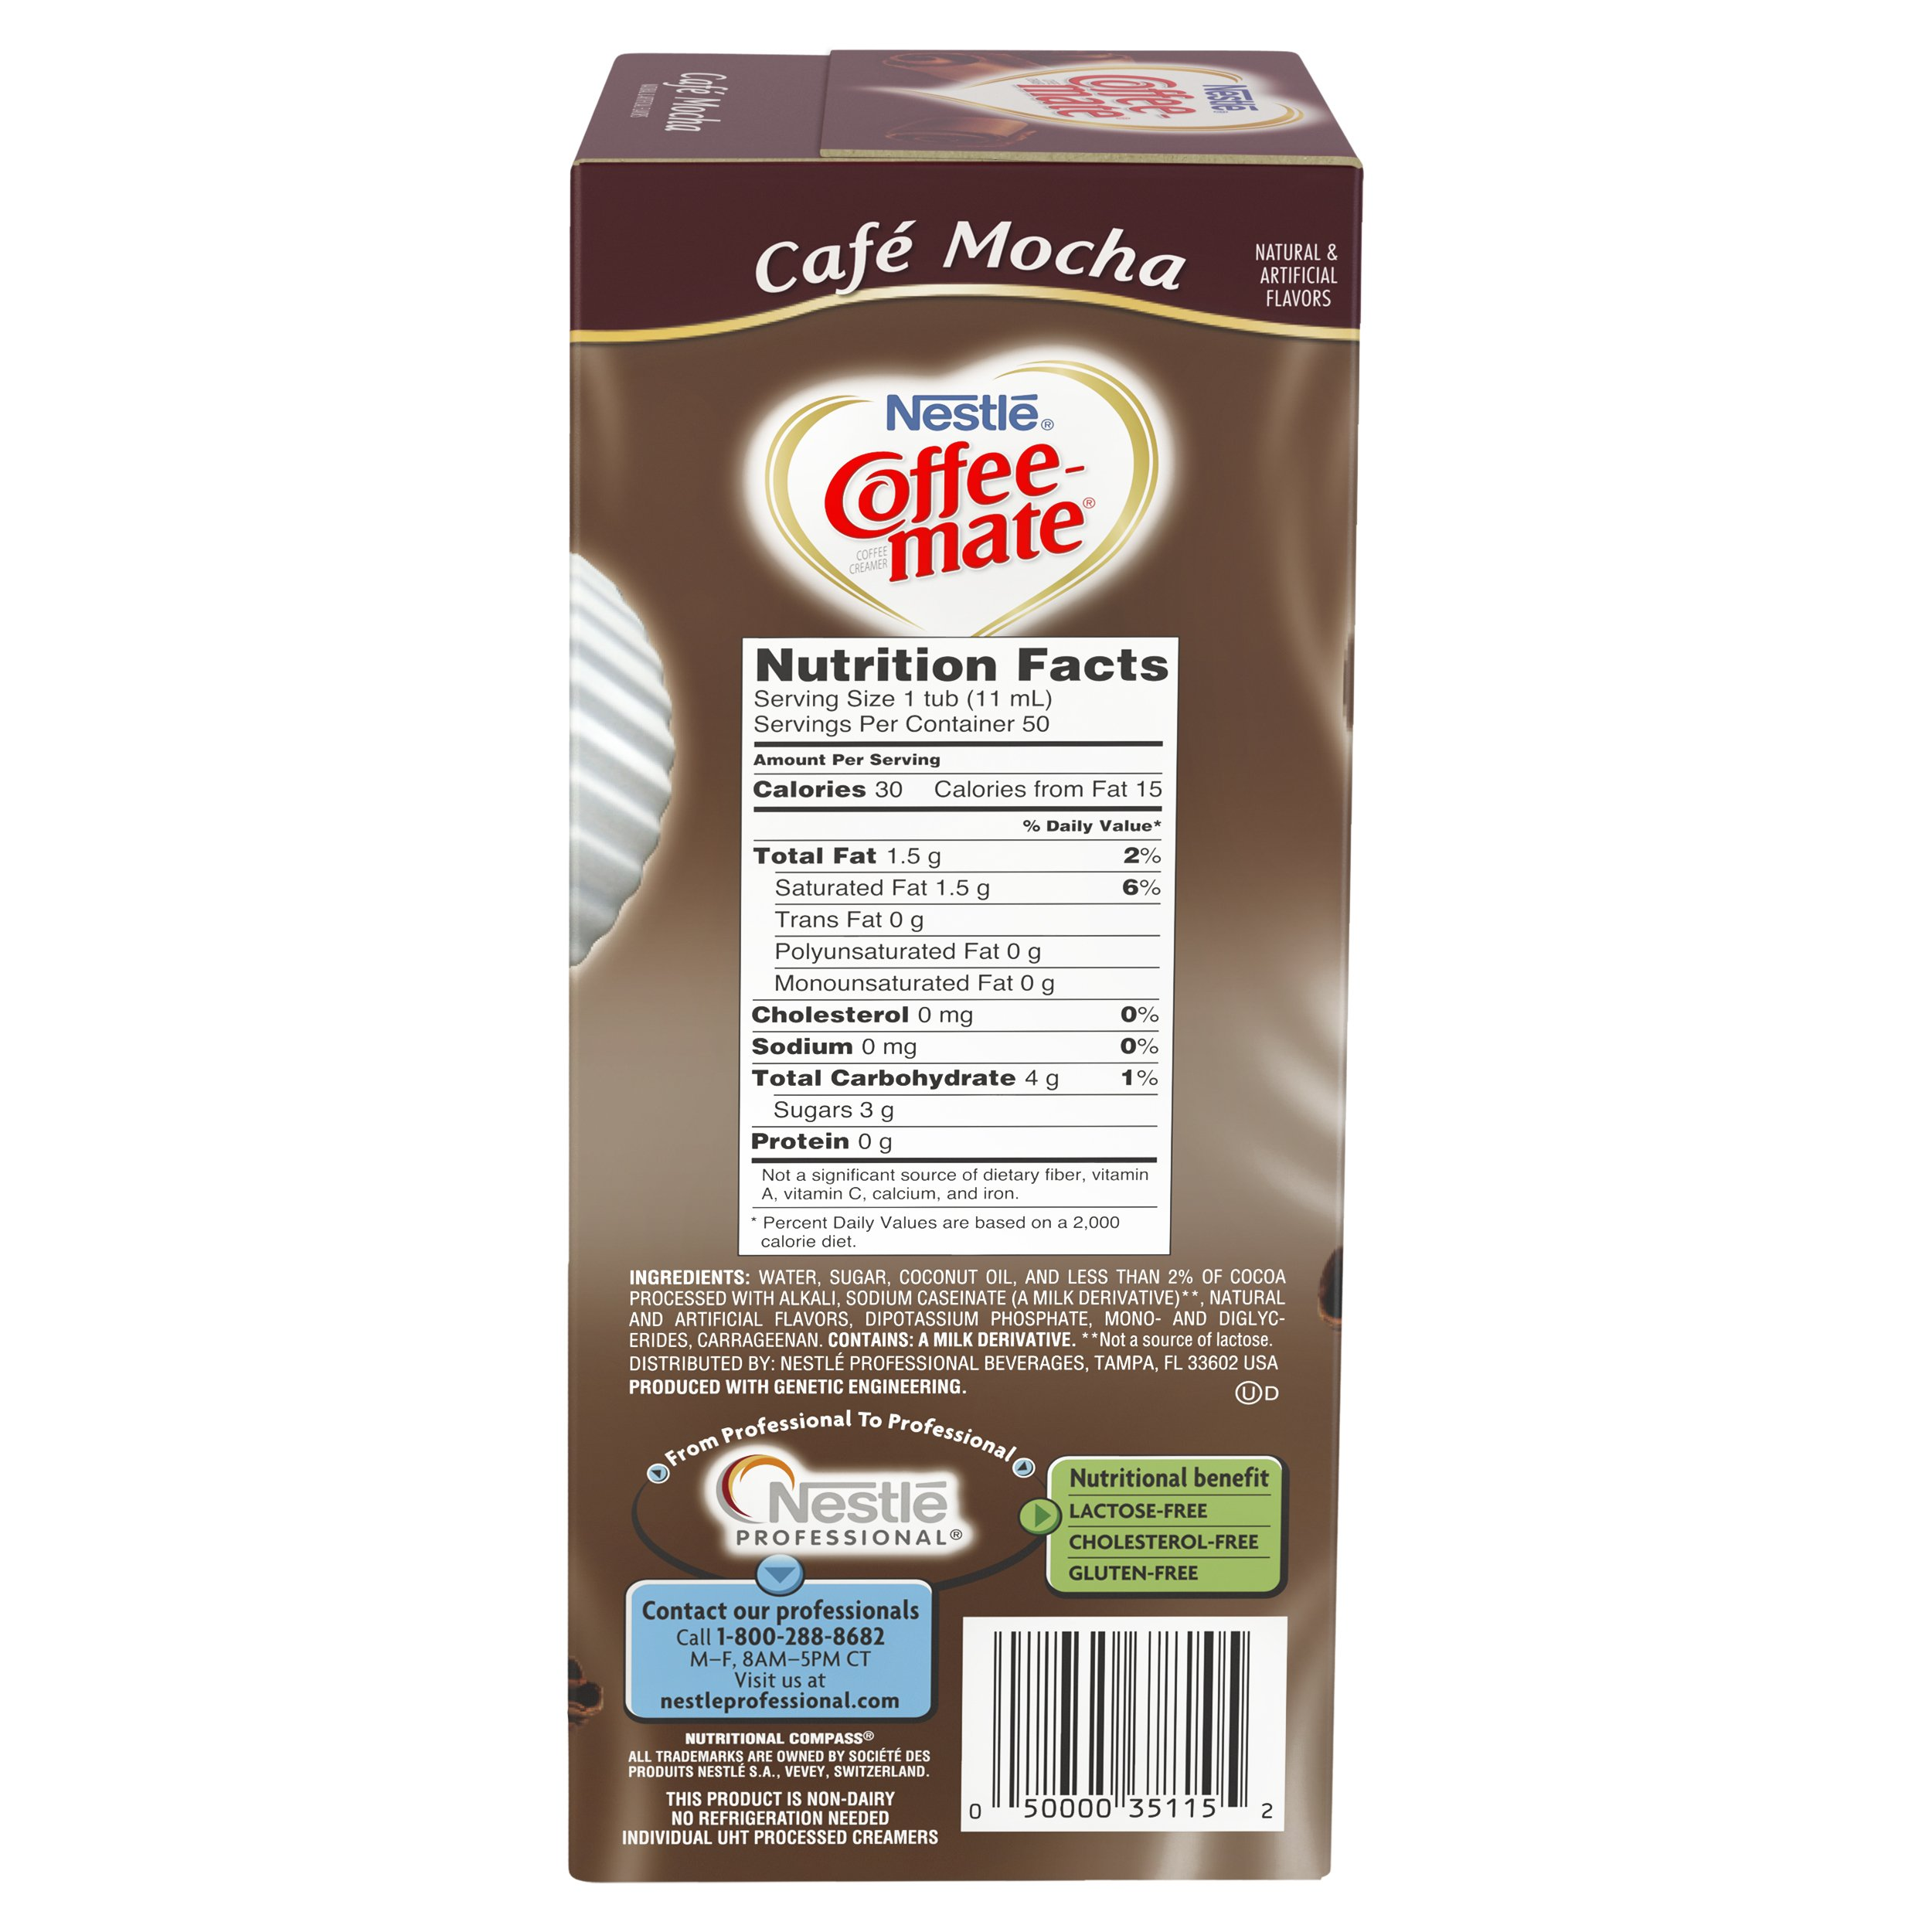 NESTLE COFFEE-MATE Coffee Creamer, Cafe Mocha, liquid creamer singles, 50 Count (Pack of 4) by Nestle Coffee Mate (Image #3)